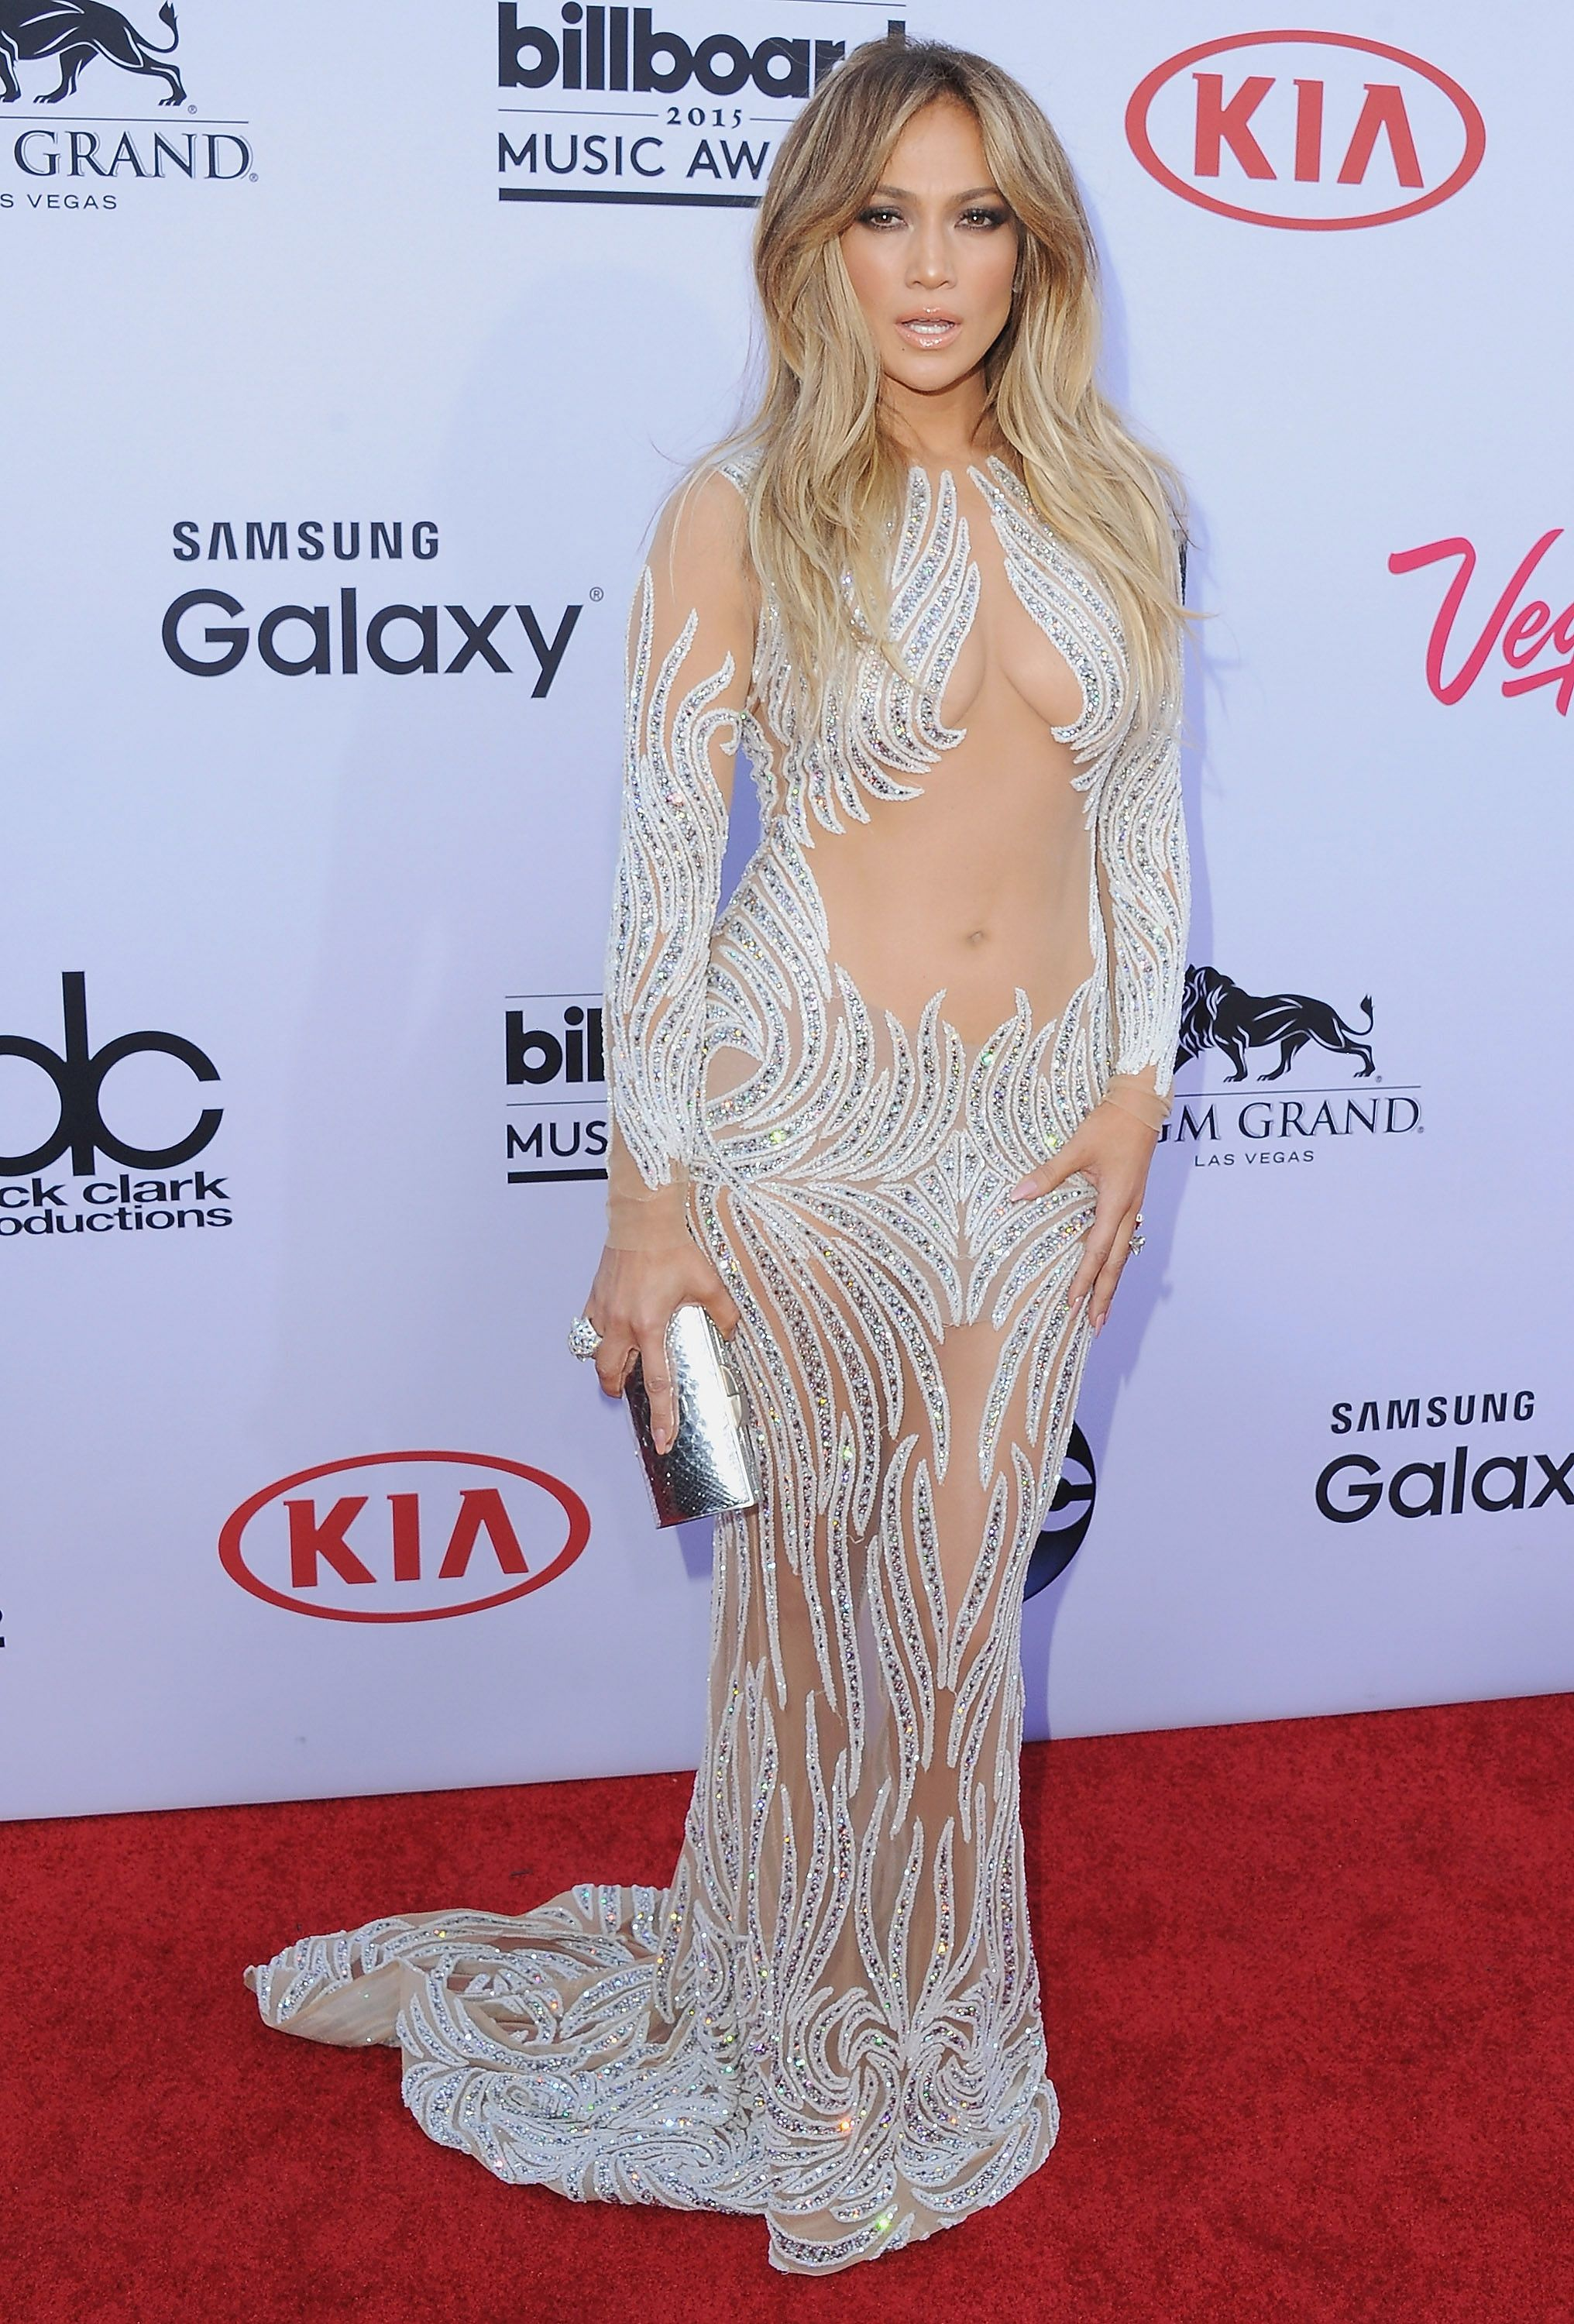 405b975871c Jennifer Lopez's Sexiest Outfits - 28 Of Her Best Looks Ever